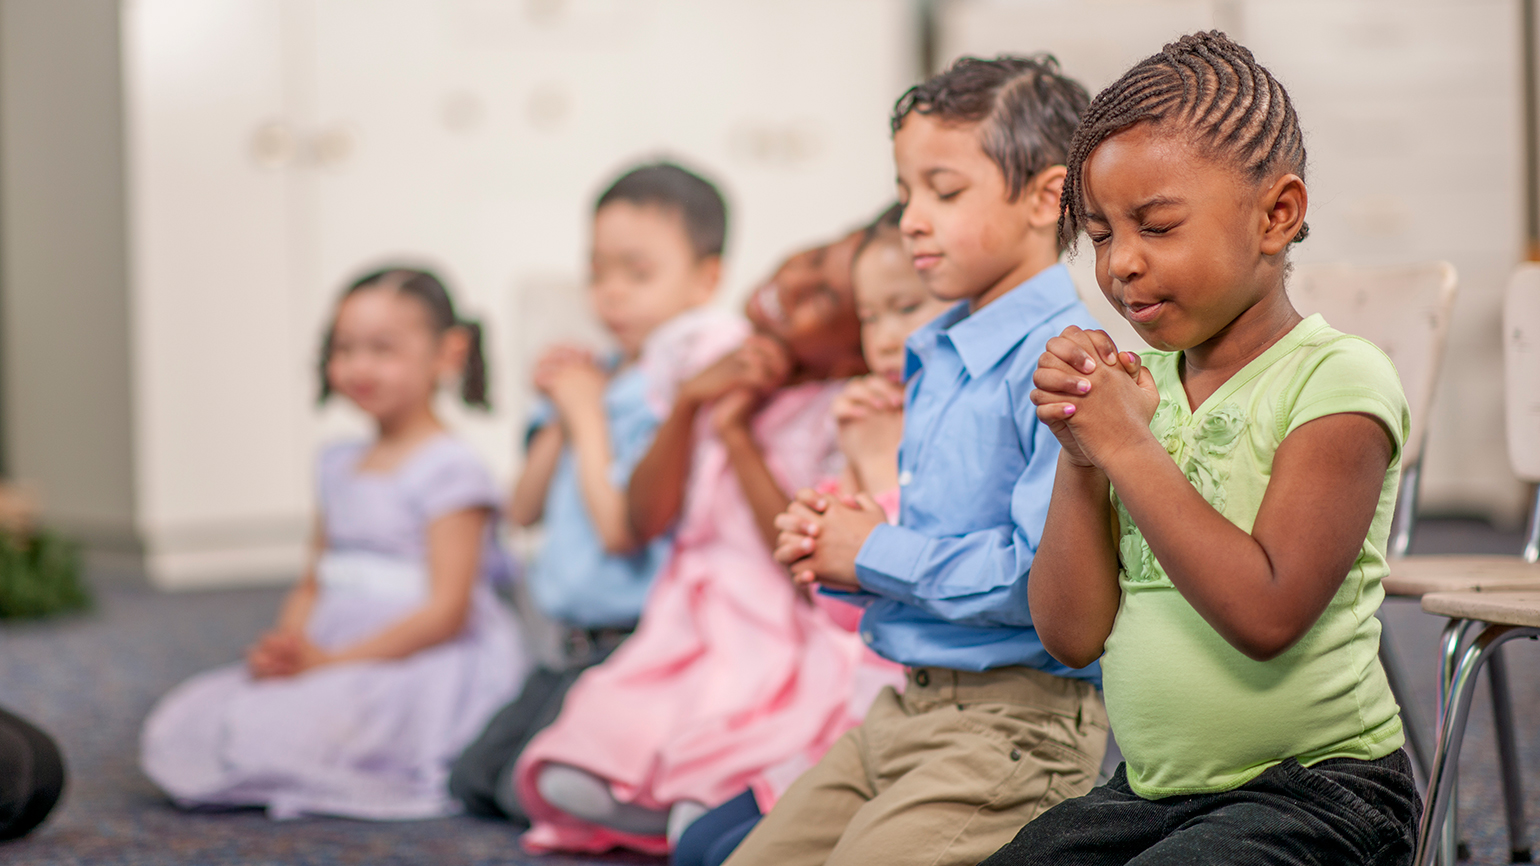 A group of young children praying